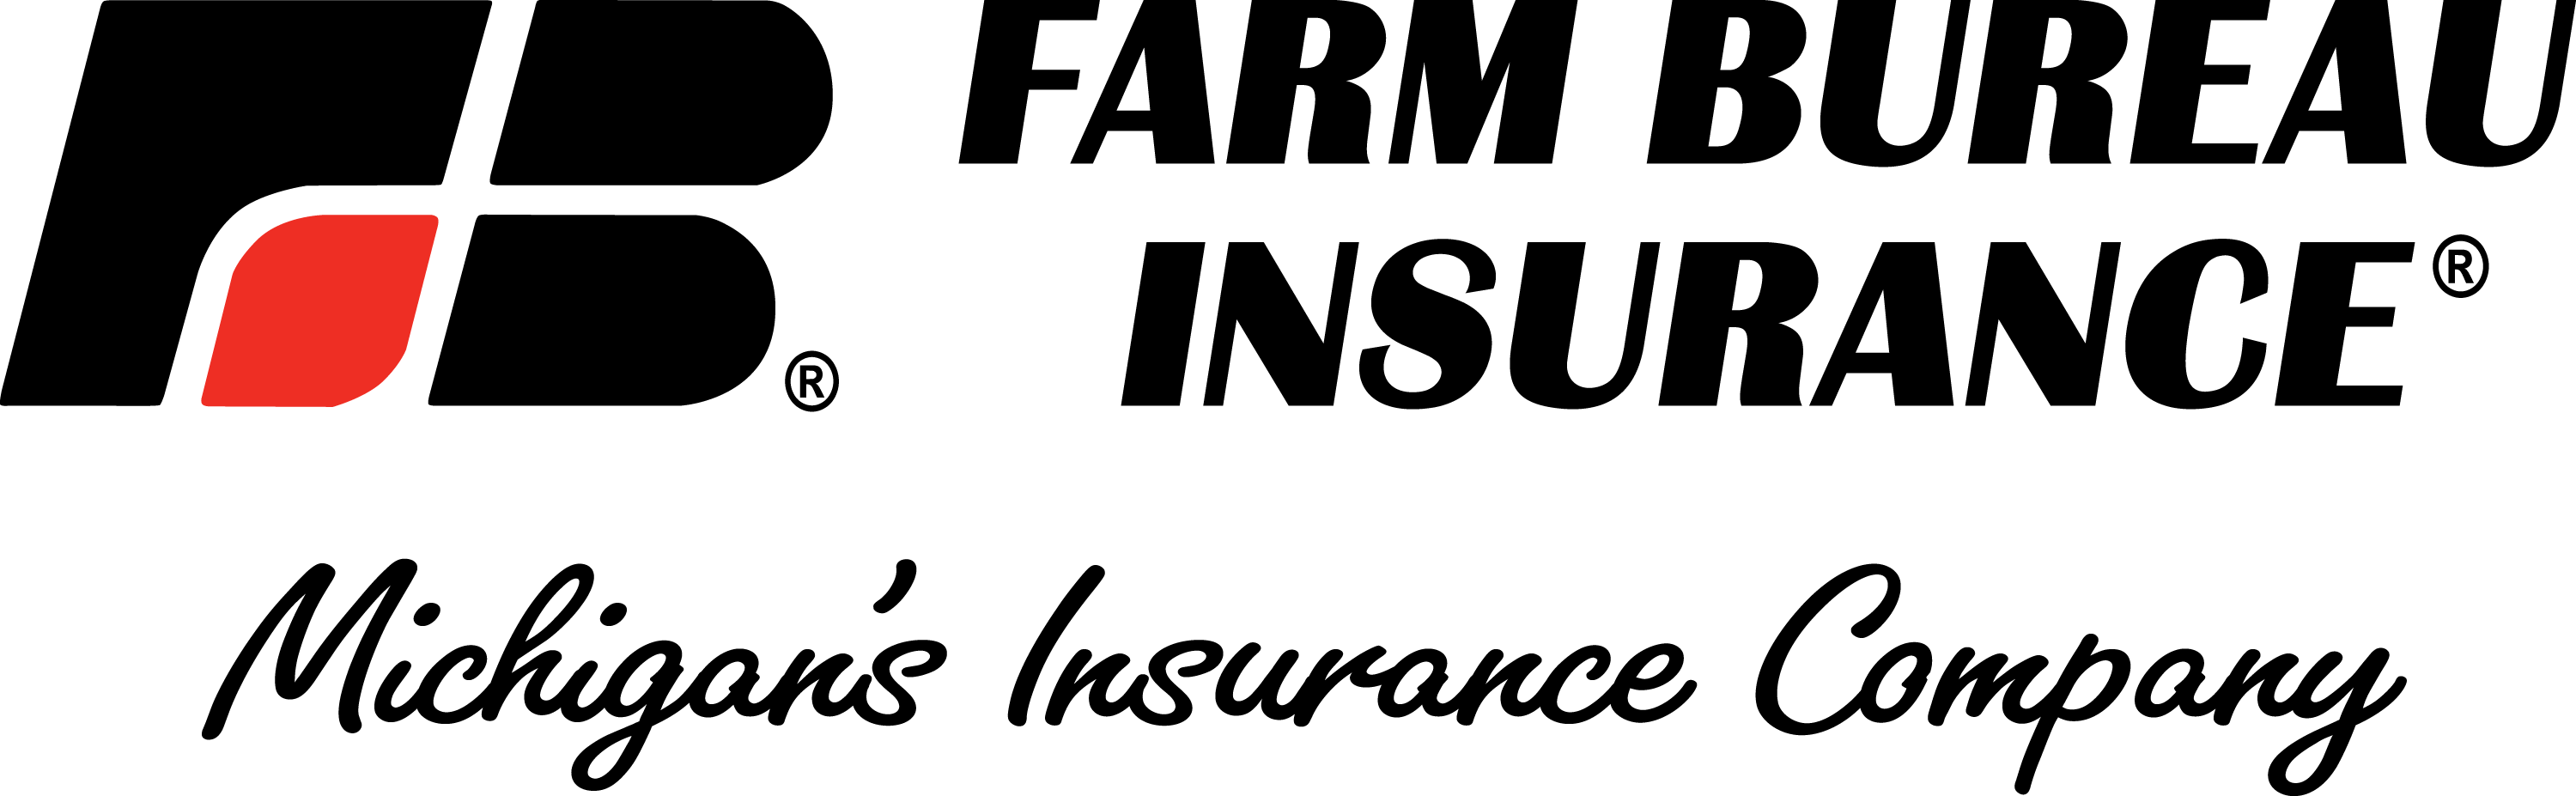 https://growthzonesitesprod.azureedge.net/wp-content/uploads/sites/1087/2020/08/Farm-Bureau-Insurance-Horizontal.png